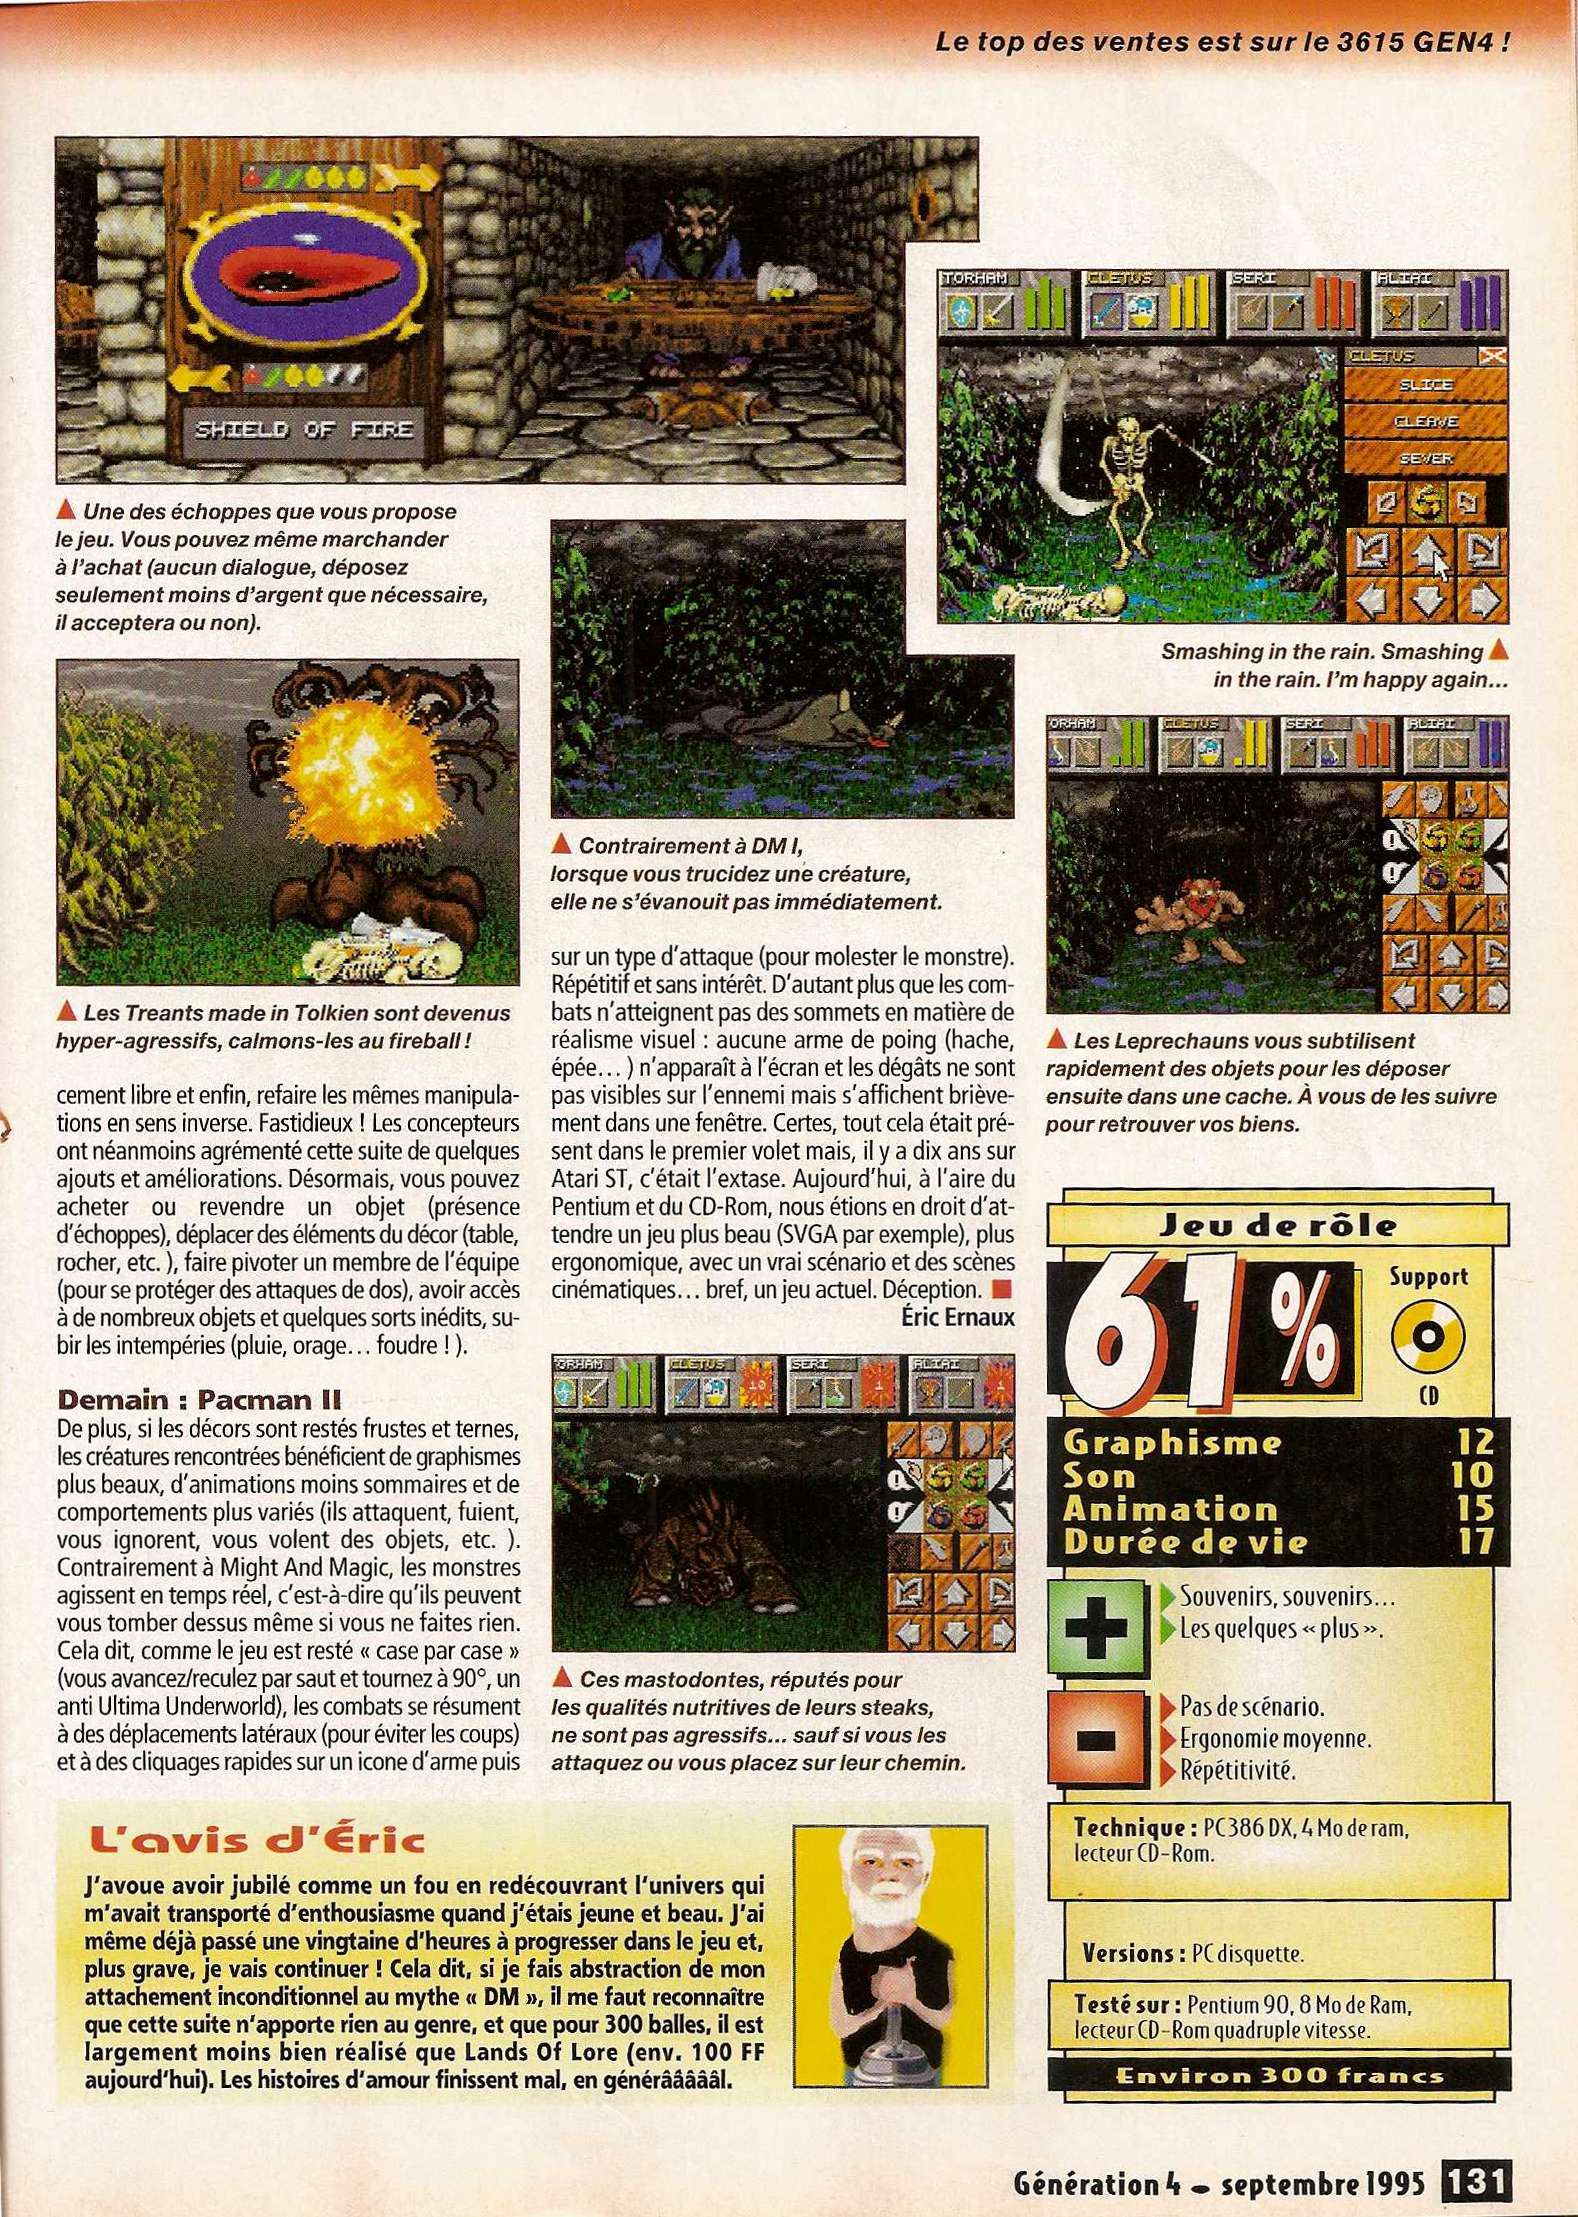 Dungeon Master II for PC Review published in French magazine 'Generation 4', Issue #80 September 1995, Page 131